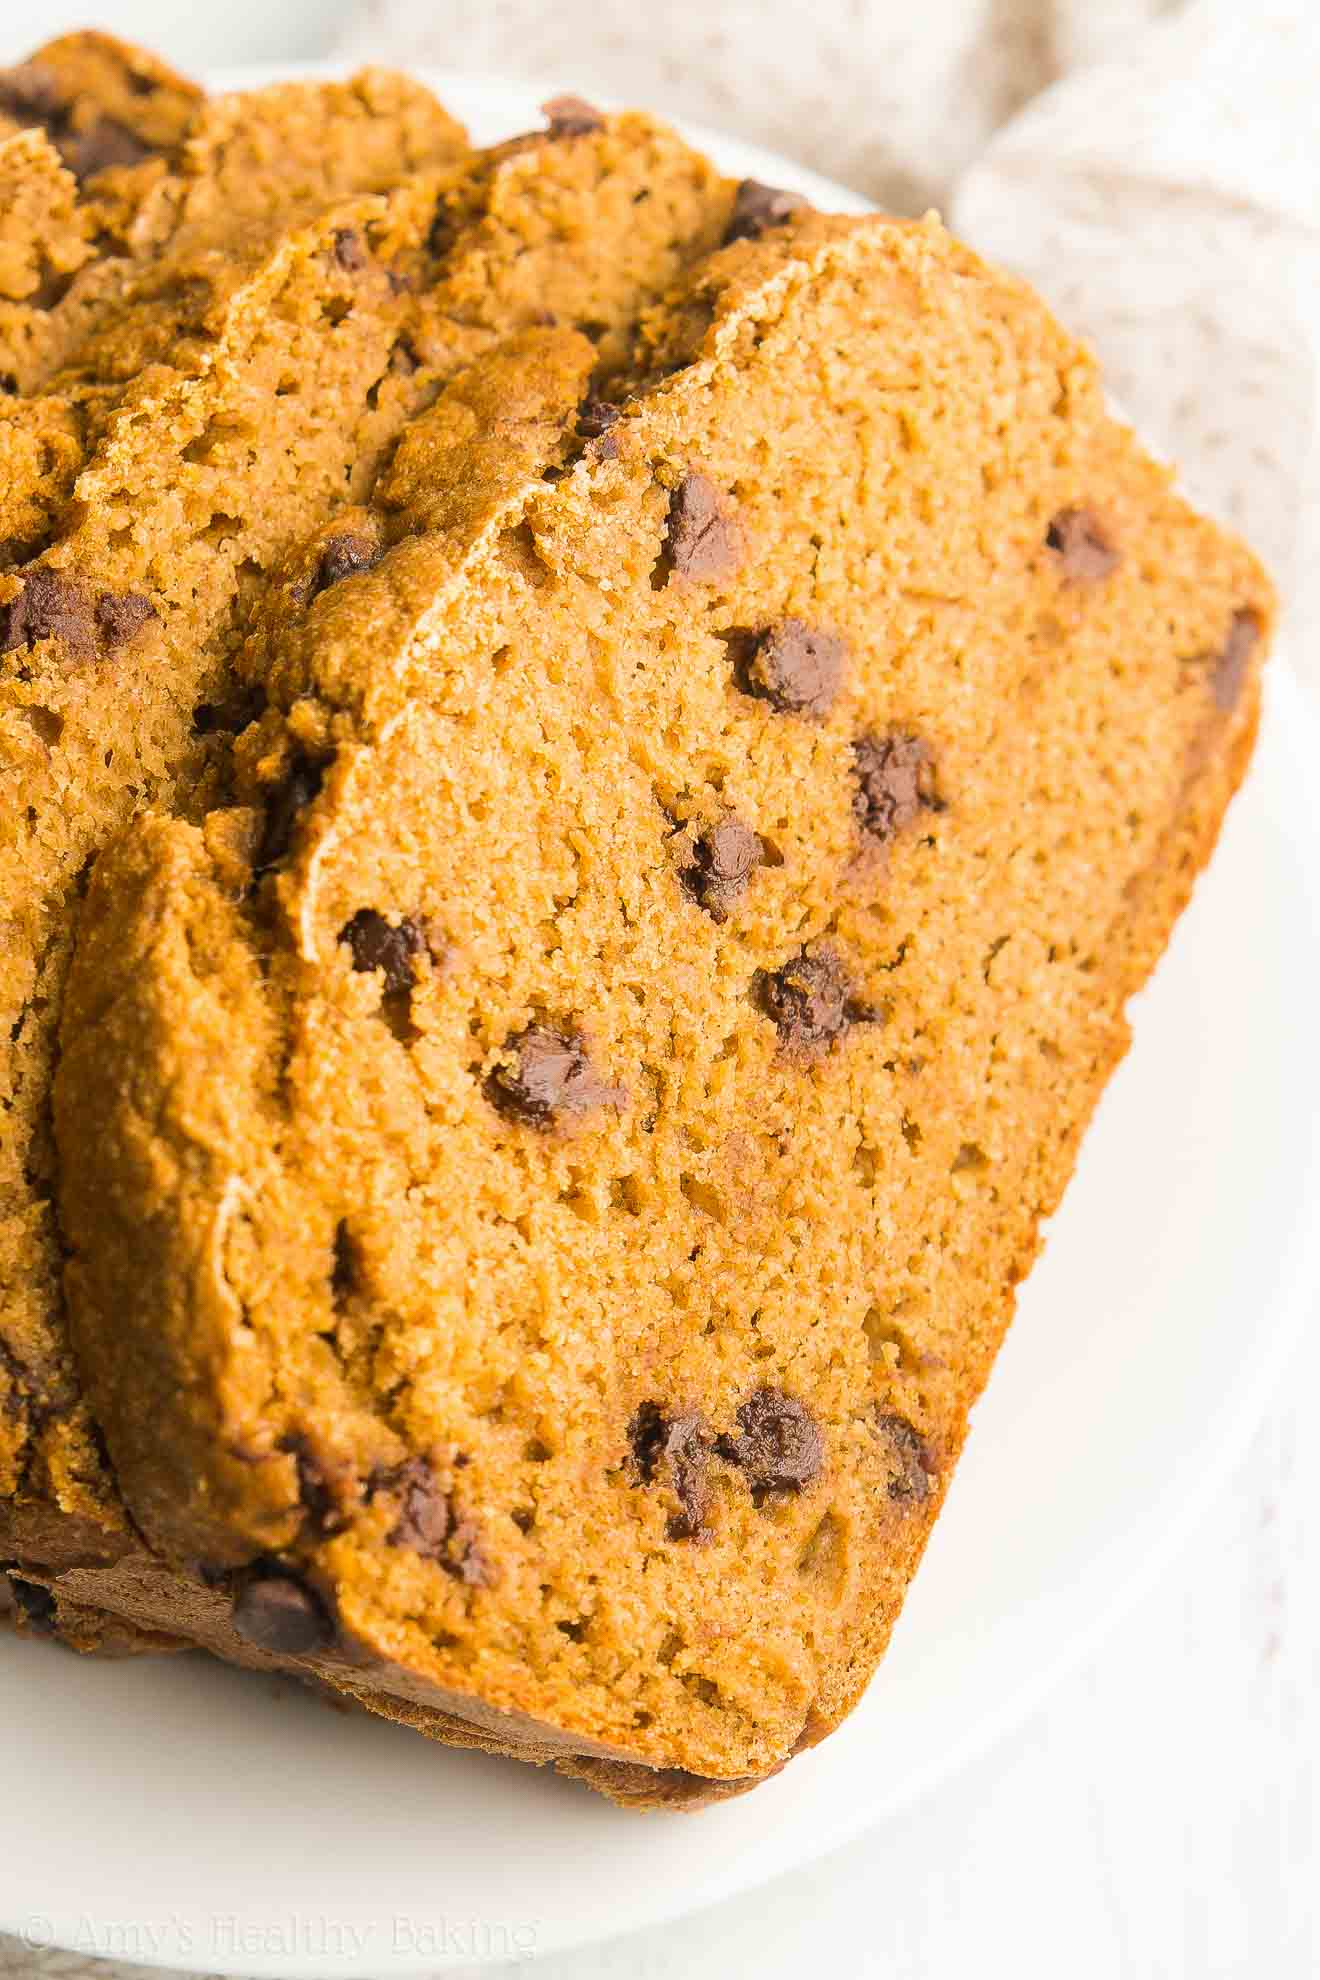 Greek Yogurt Pumpkin Chocolate Chip Pound Cake | Amy's Healthy Baking